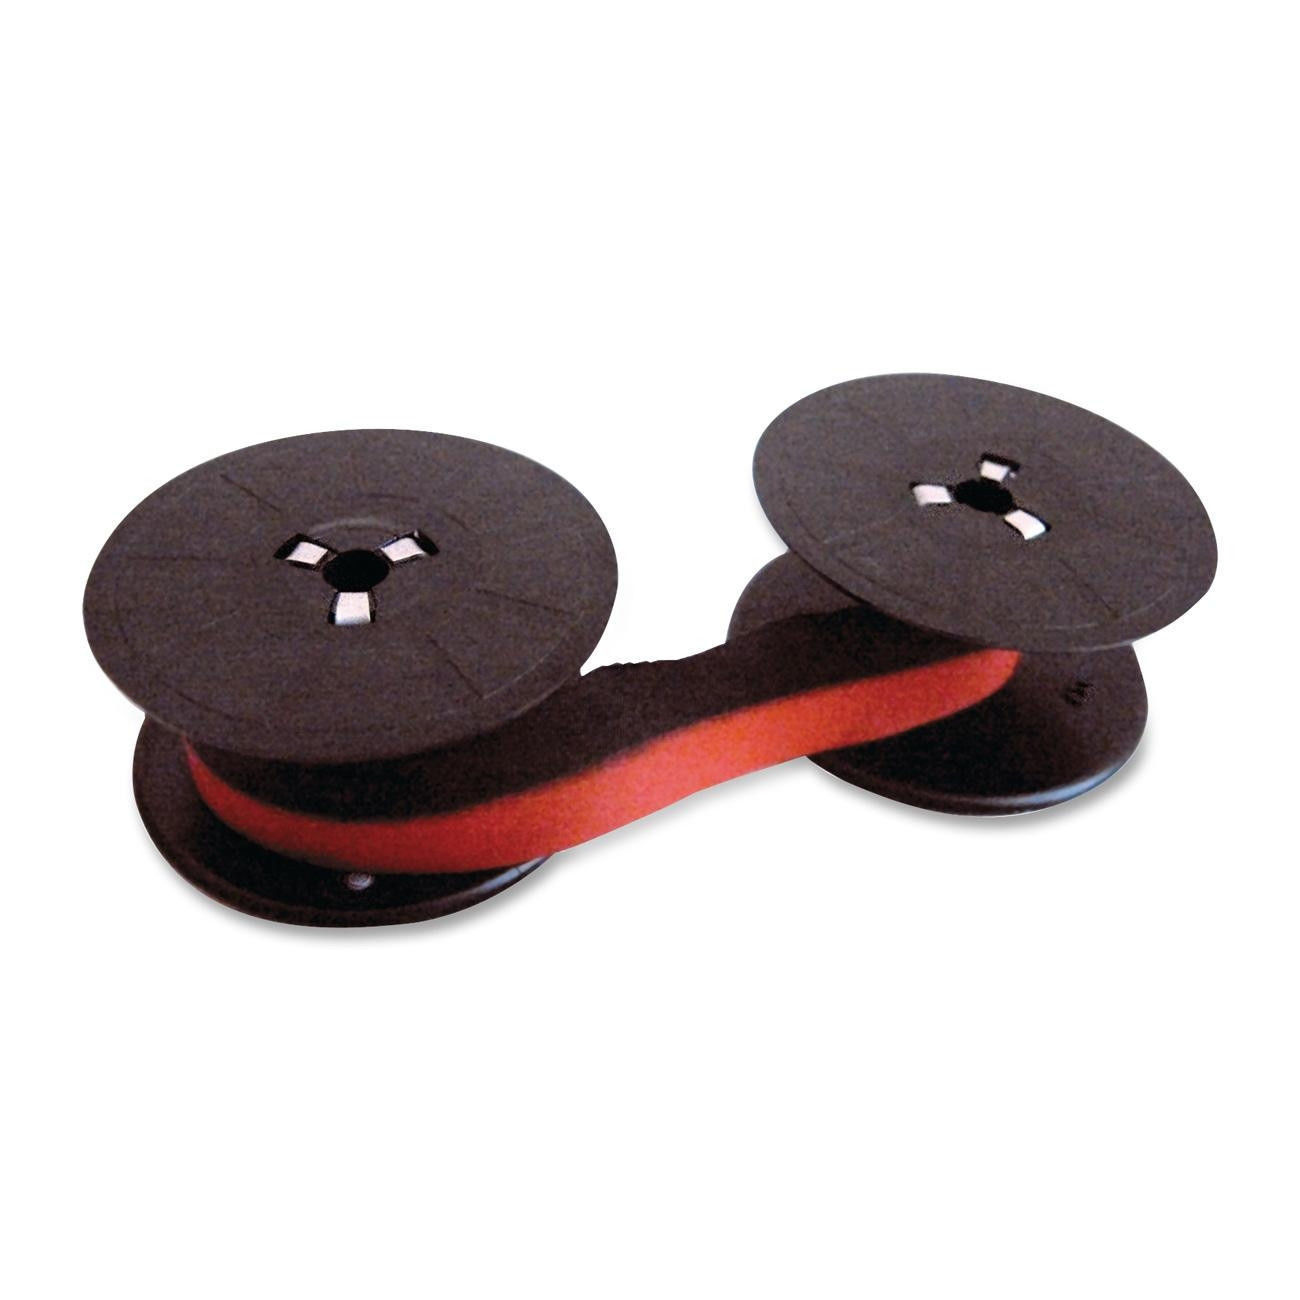 Sharp CS2186 CS2187 CS2406 CS2602 Calculator Ribbon Black and Red (3 Pack)